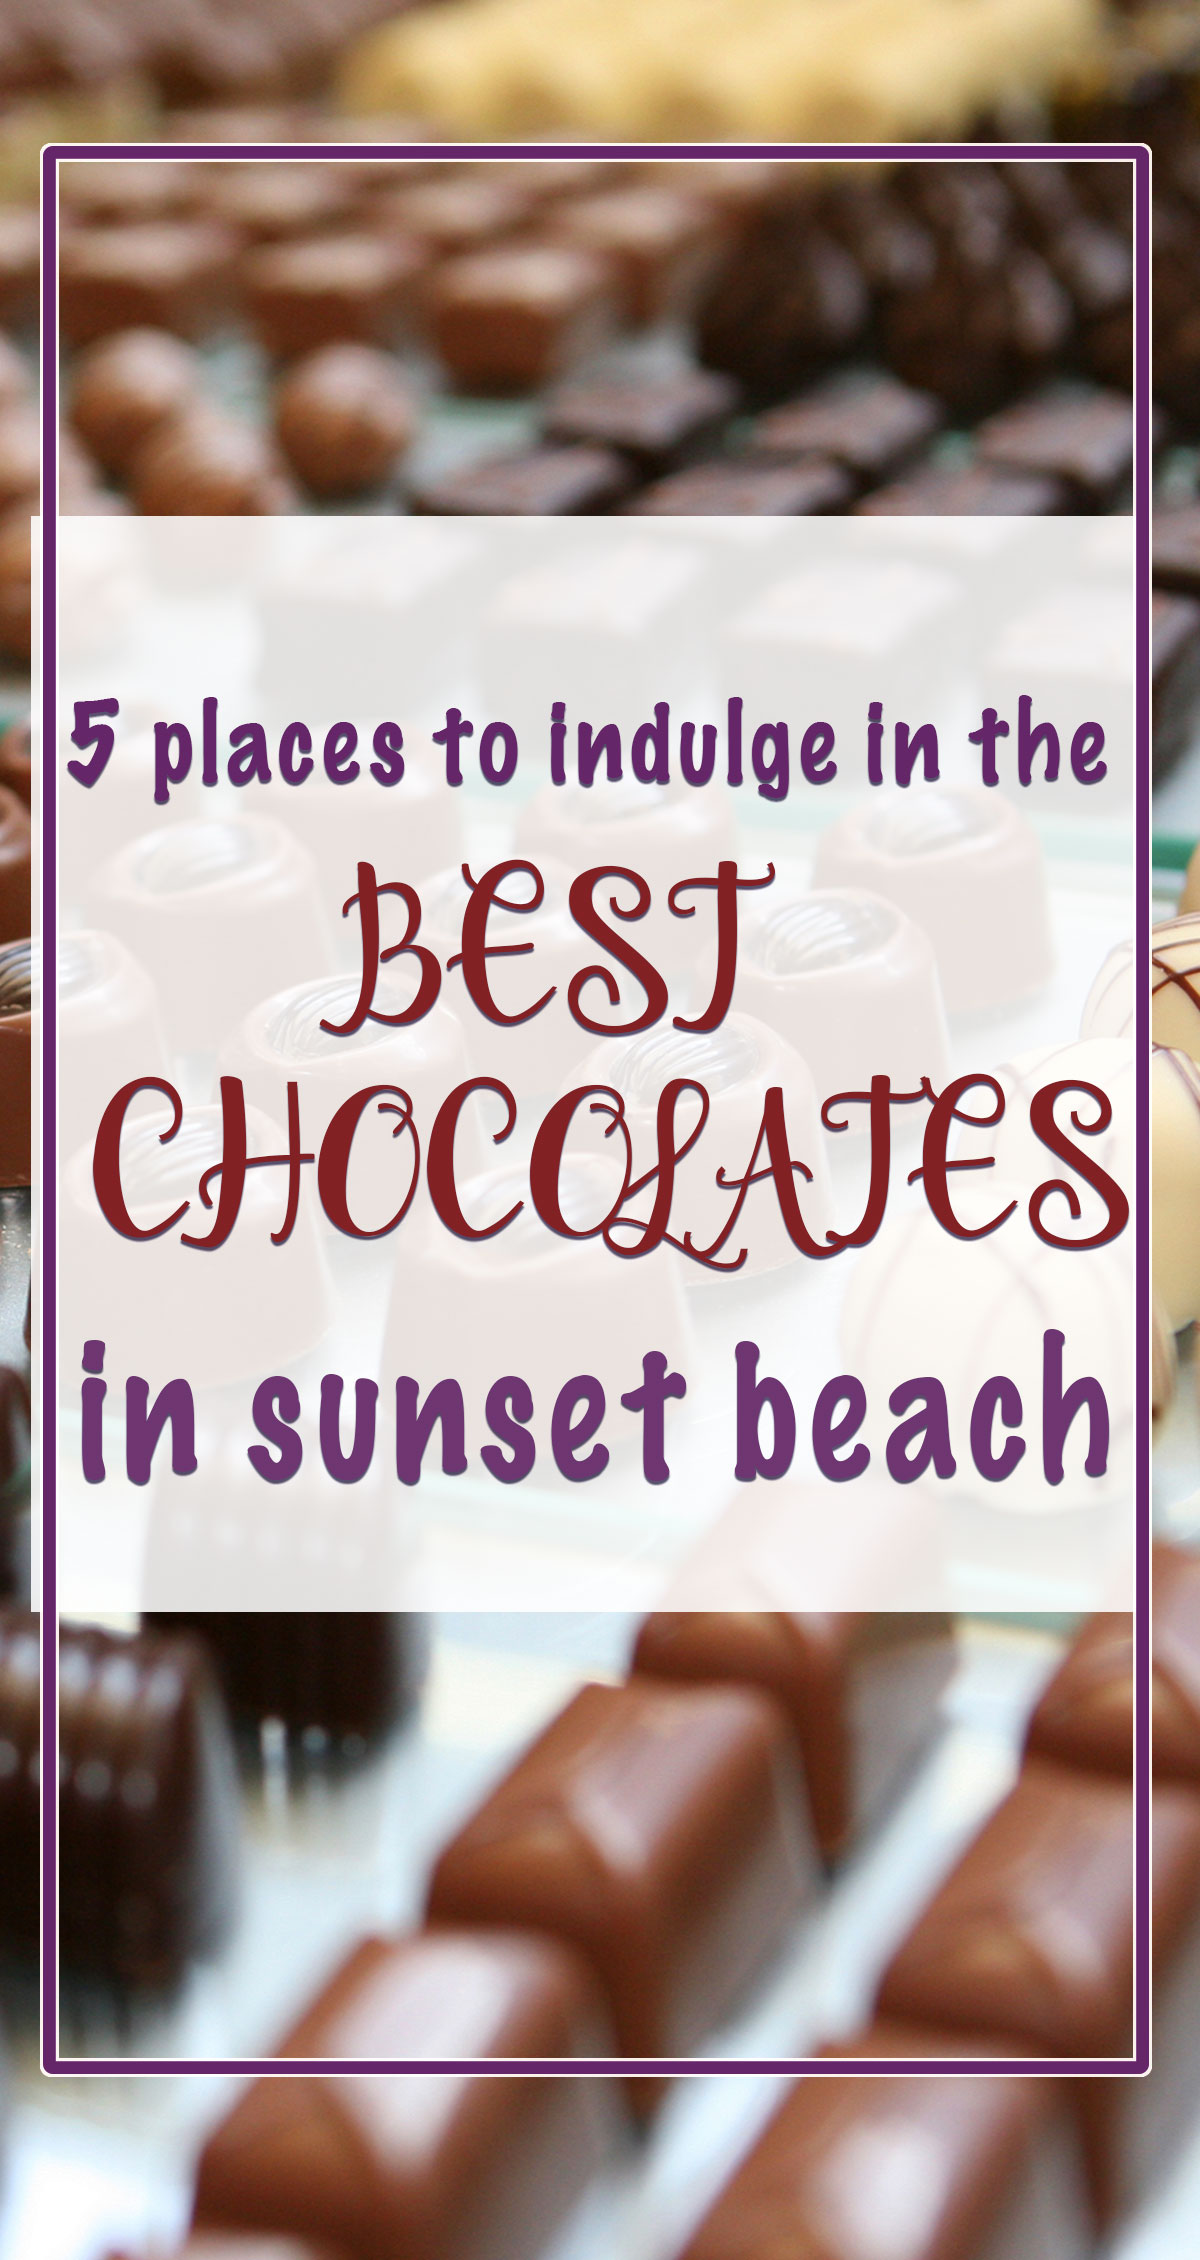 5 Places to Indulge in the Best Chocolates in Sunset Beach Pin